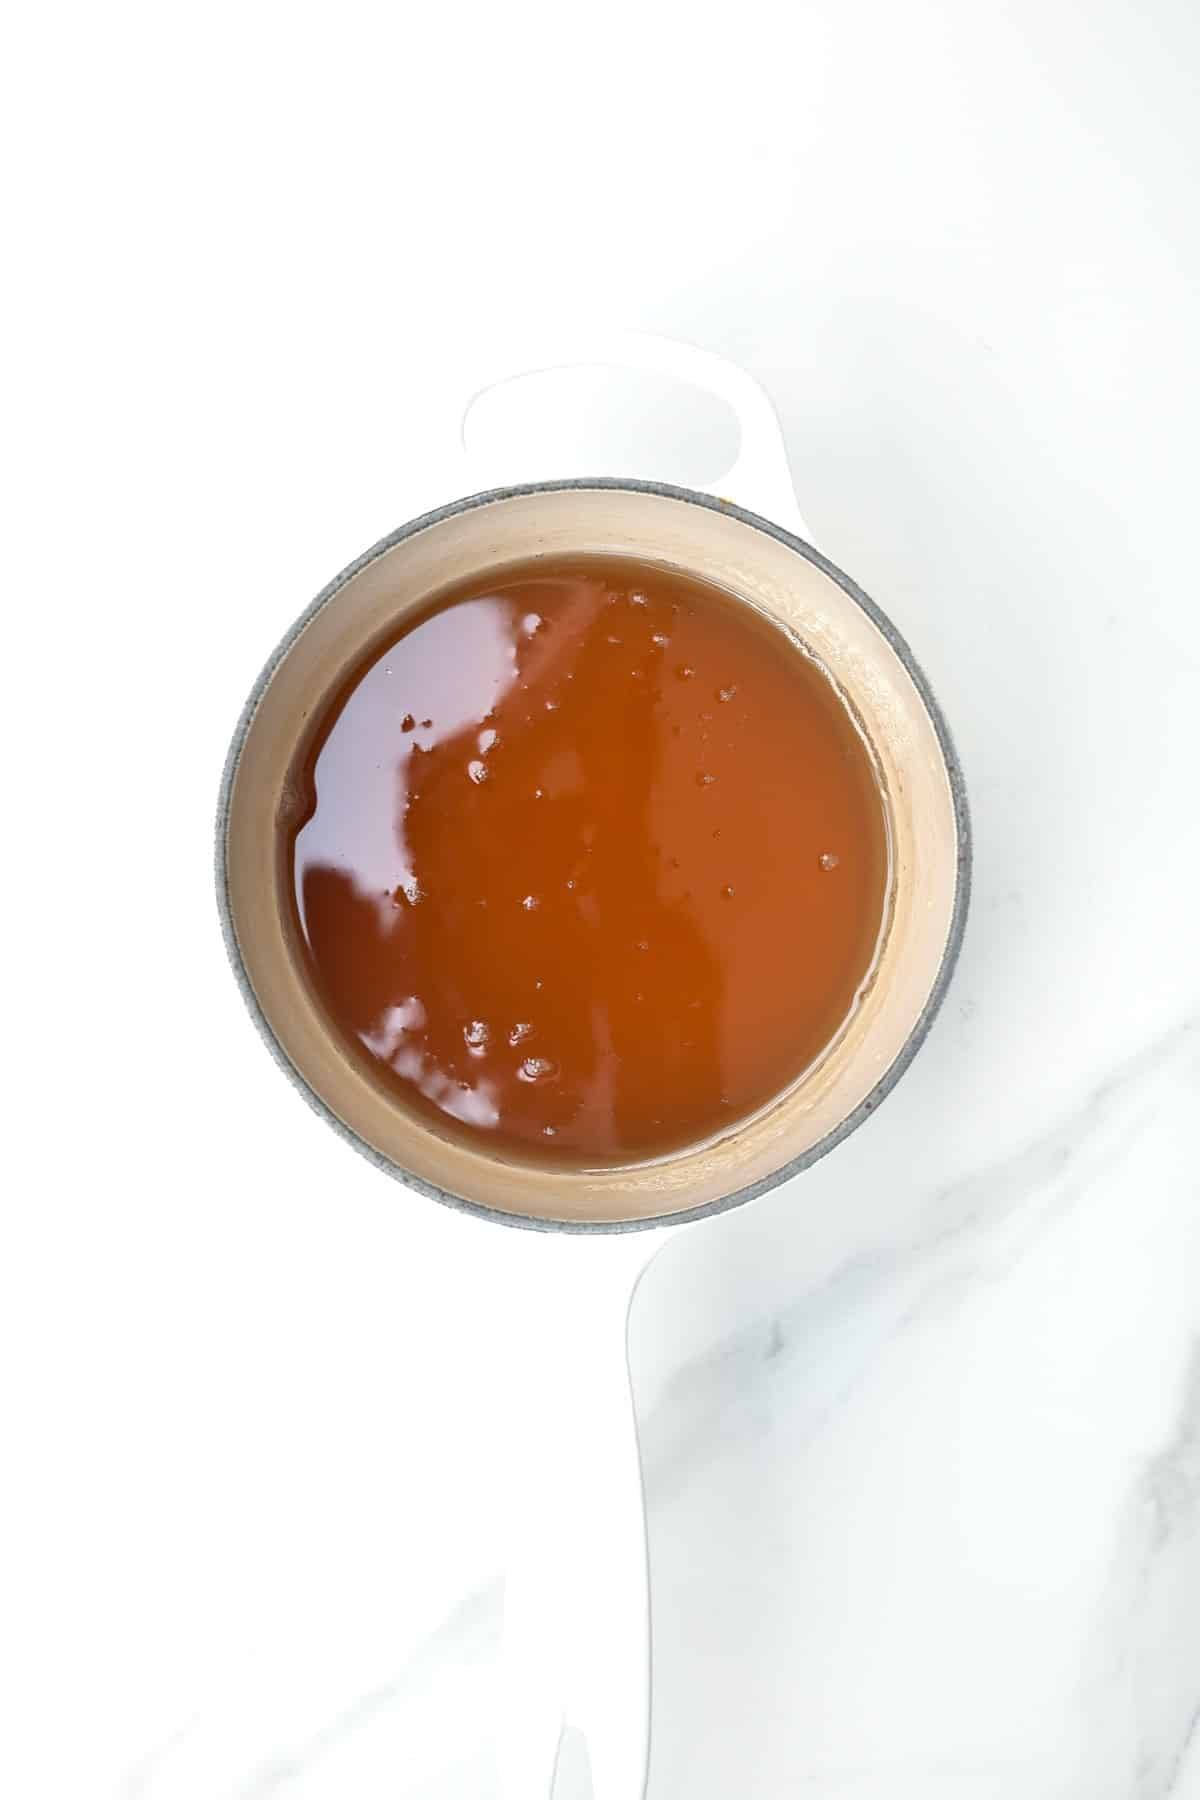 Sugar syrup in a pan